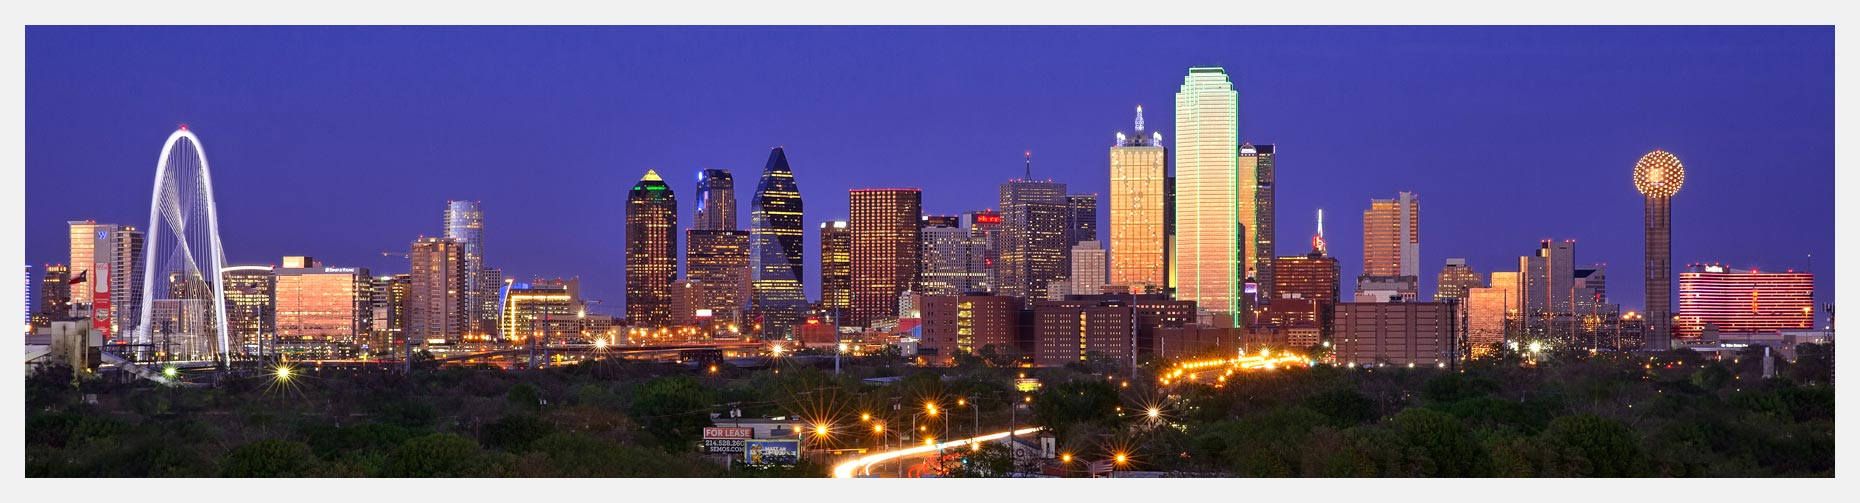 Dallas Skyline Panorama at Night